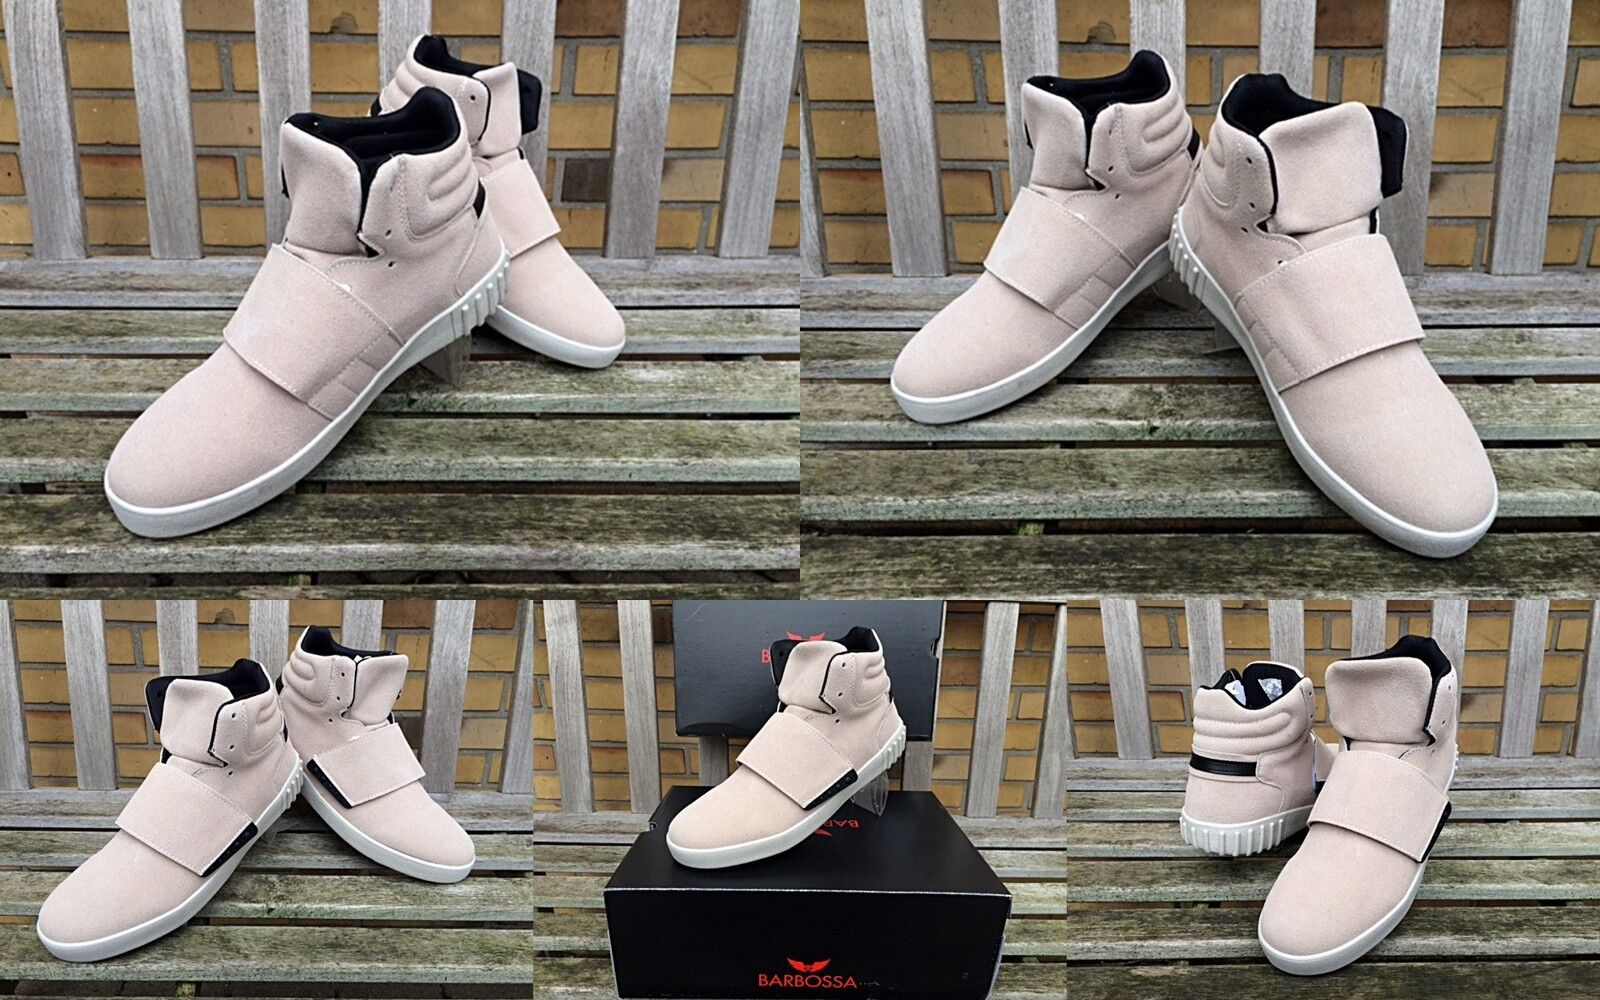 be53eb92fd5263 YOUNG FASHION BARBOSSA STREET CLUB SKATER STYLE BOOTS MODE HERREN SNEAKER  SCHUHE